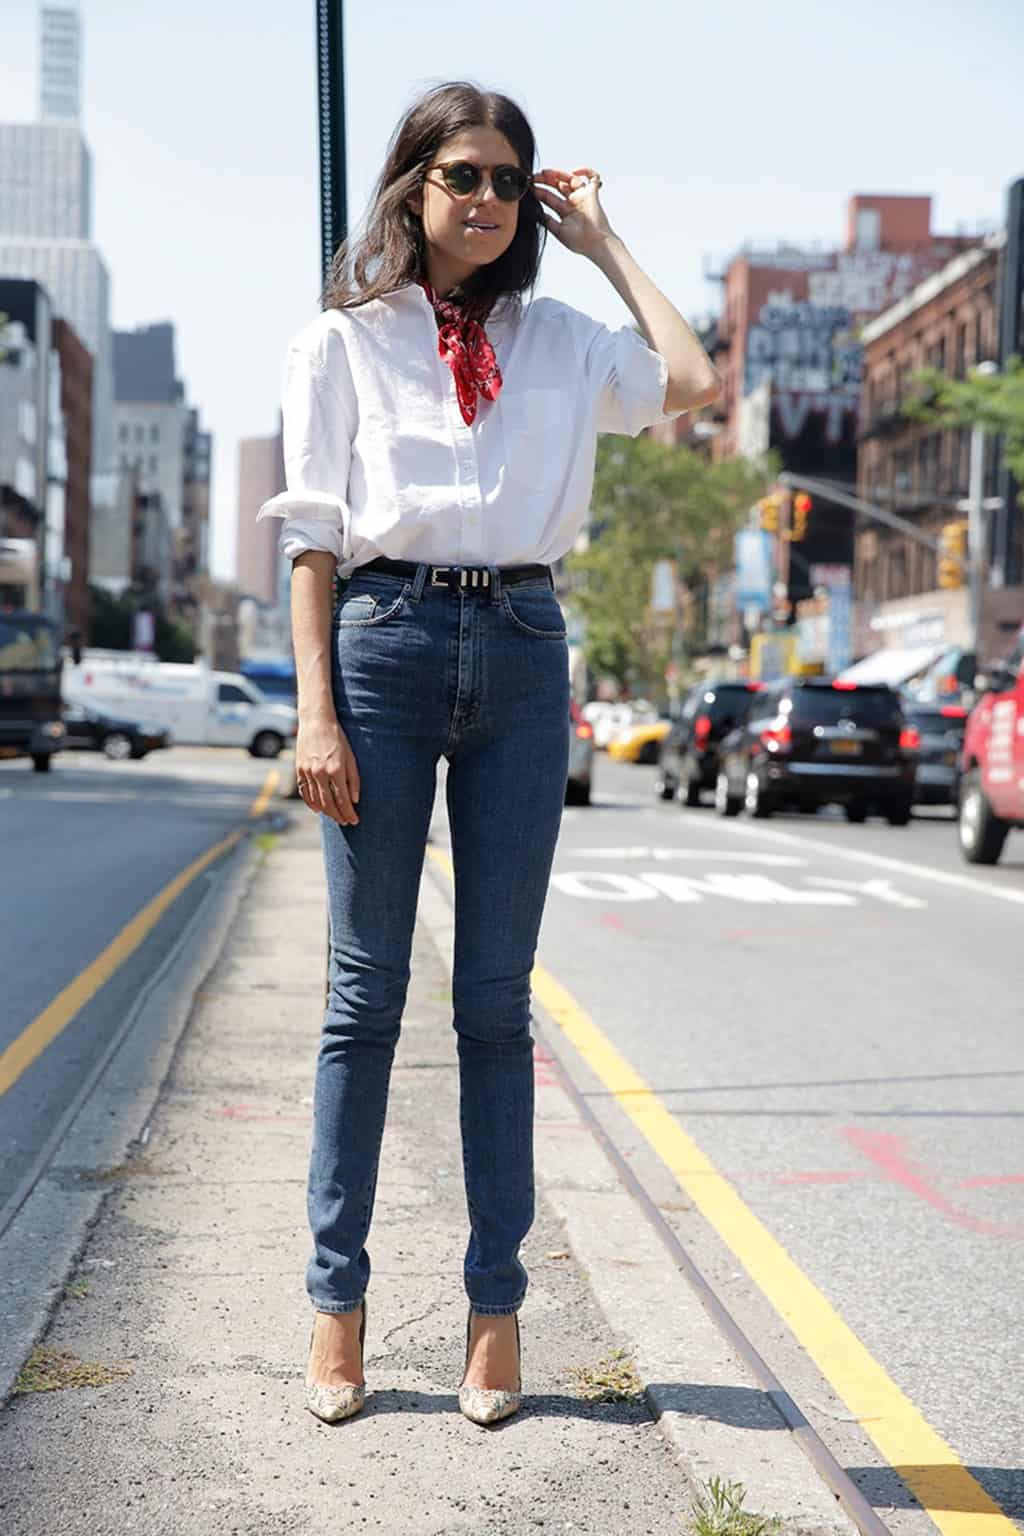 High waisted jeans with button up blouse concert outfit idea